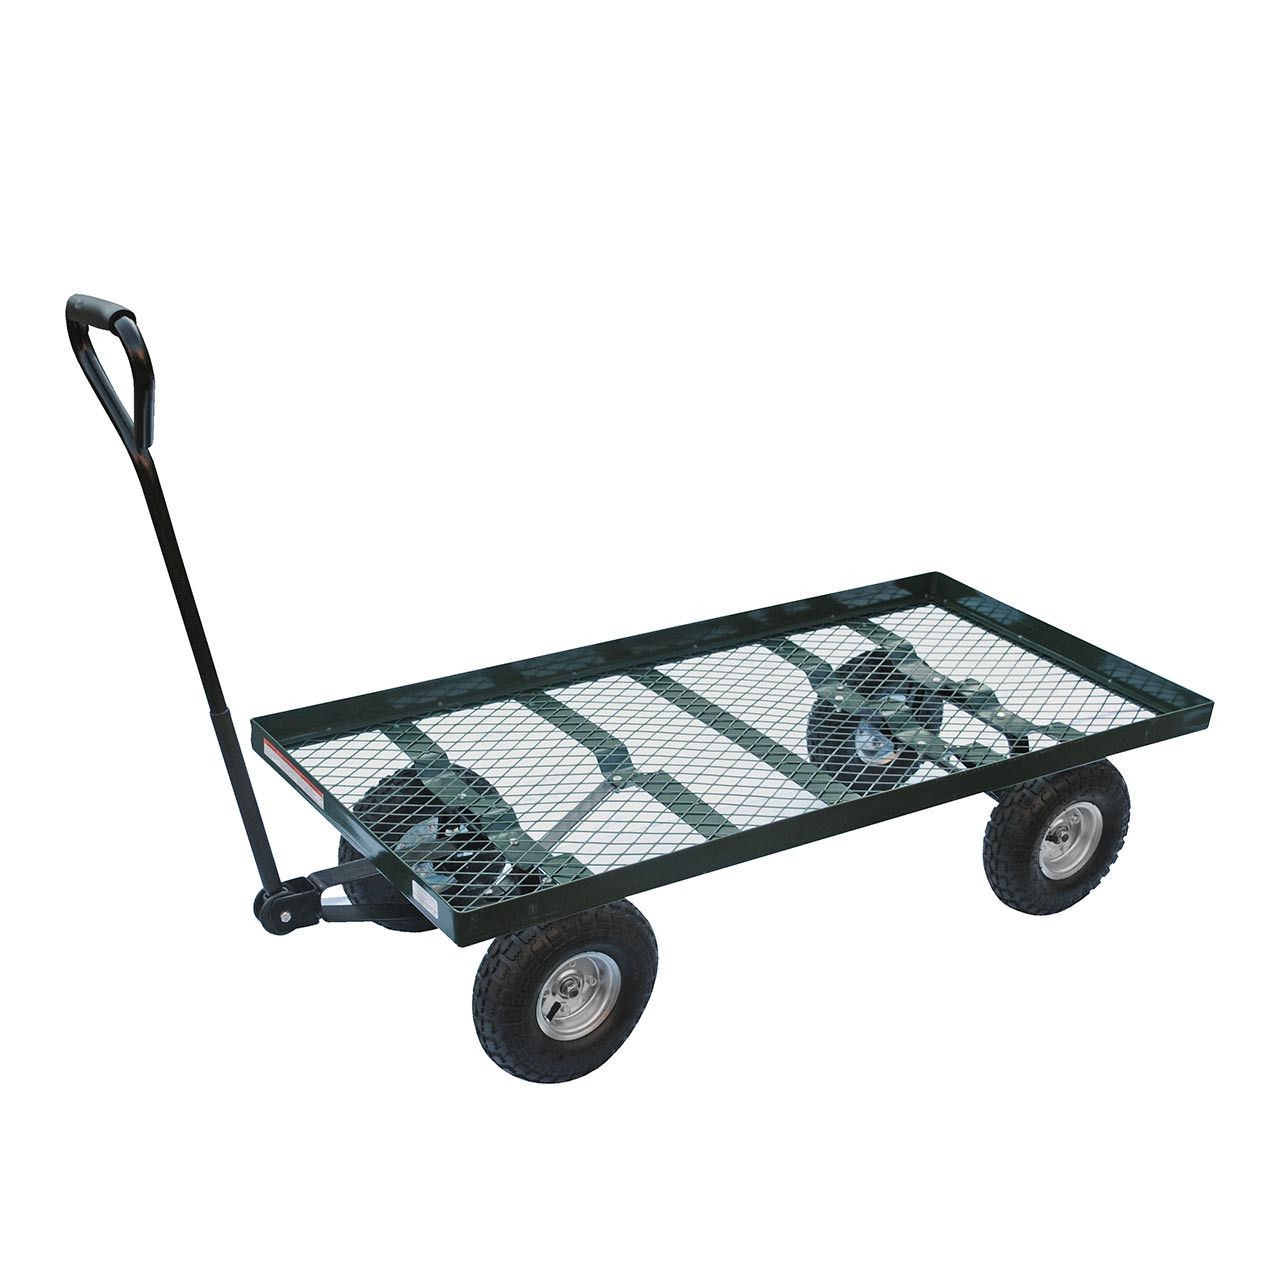 Nursery platform carts make moving landscaping products effortless